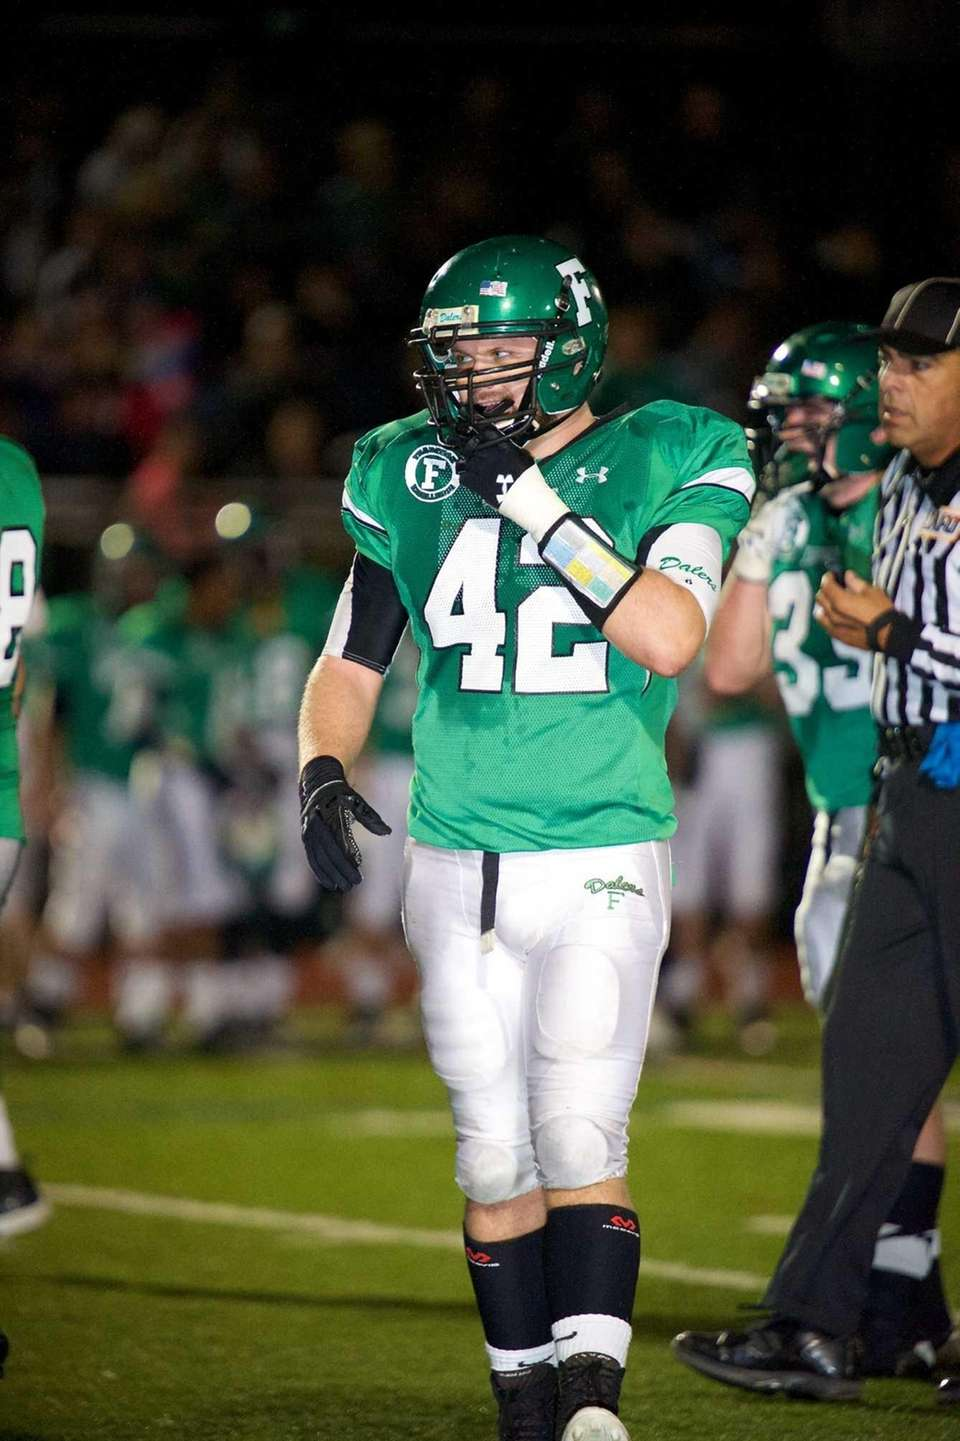 Farmingdale defensive lineman Tom Ammirati gets into position